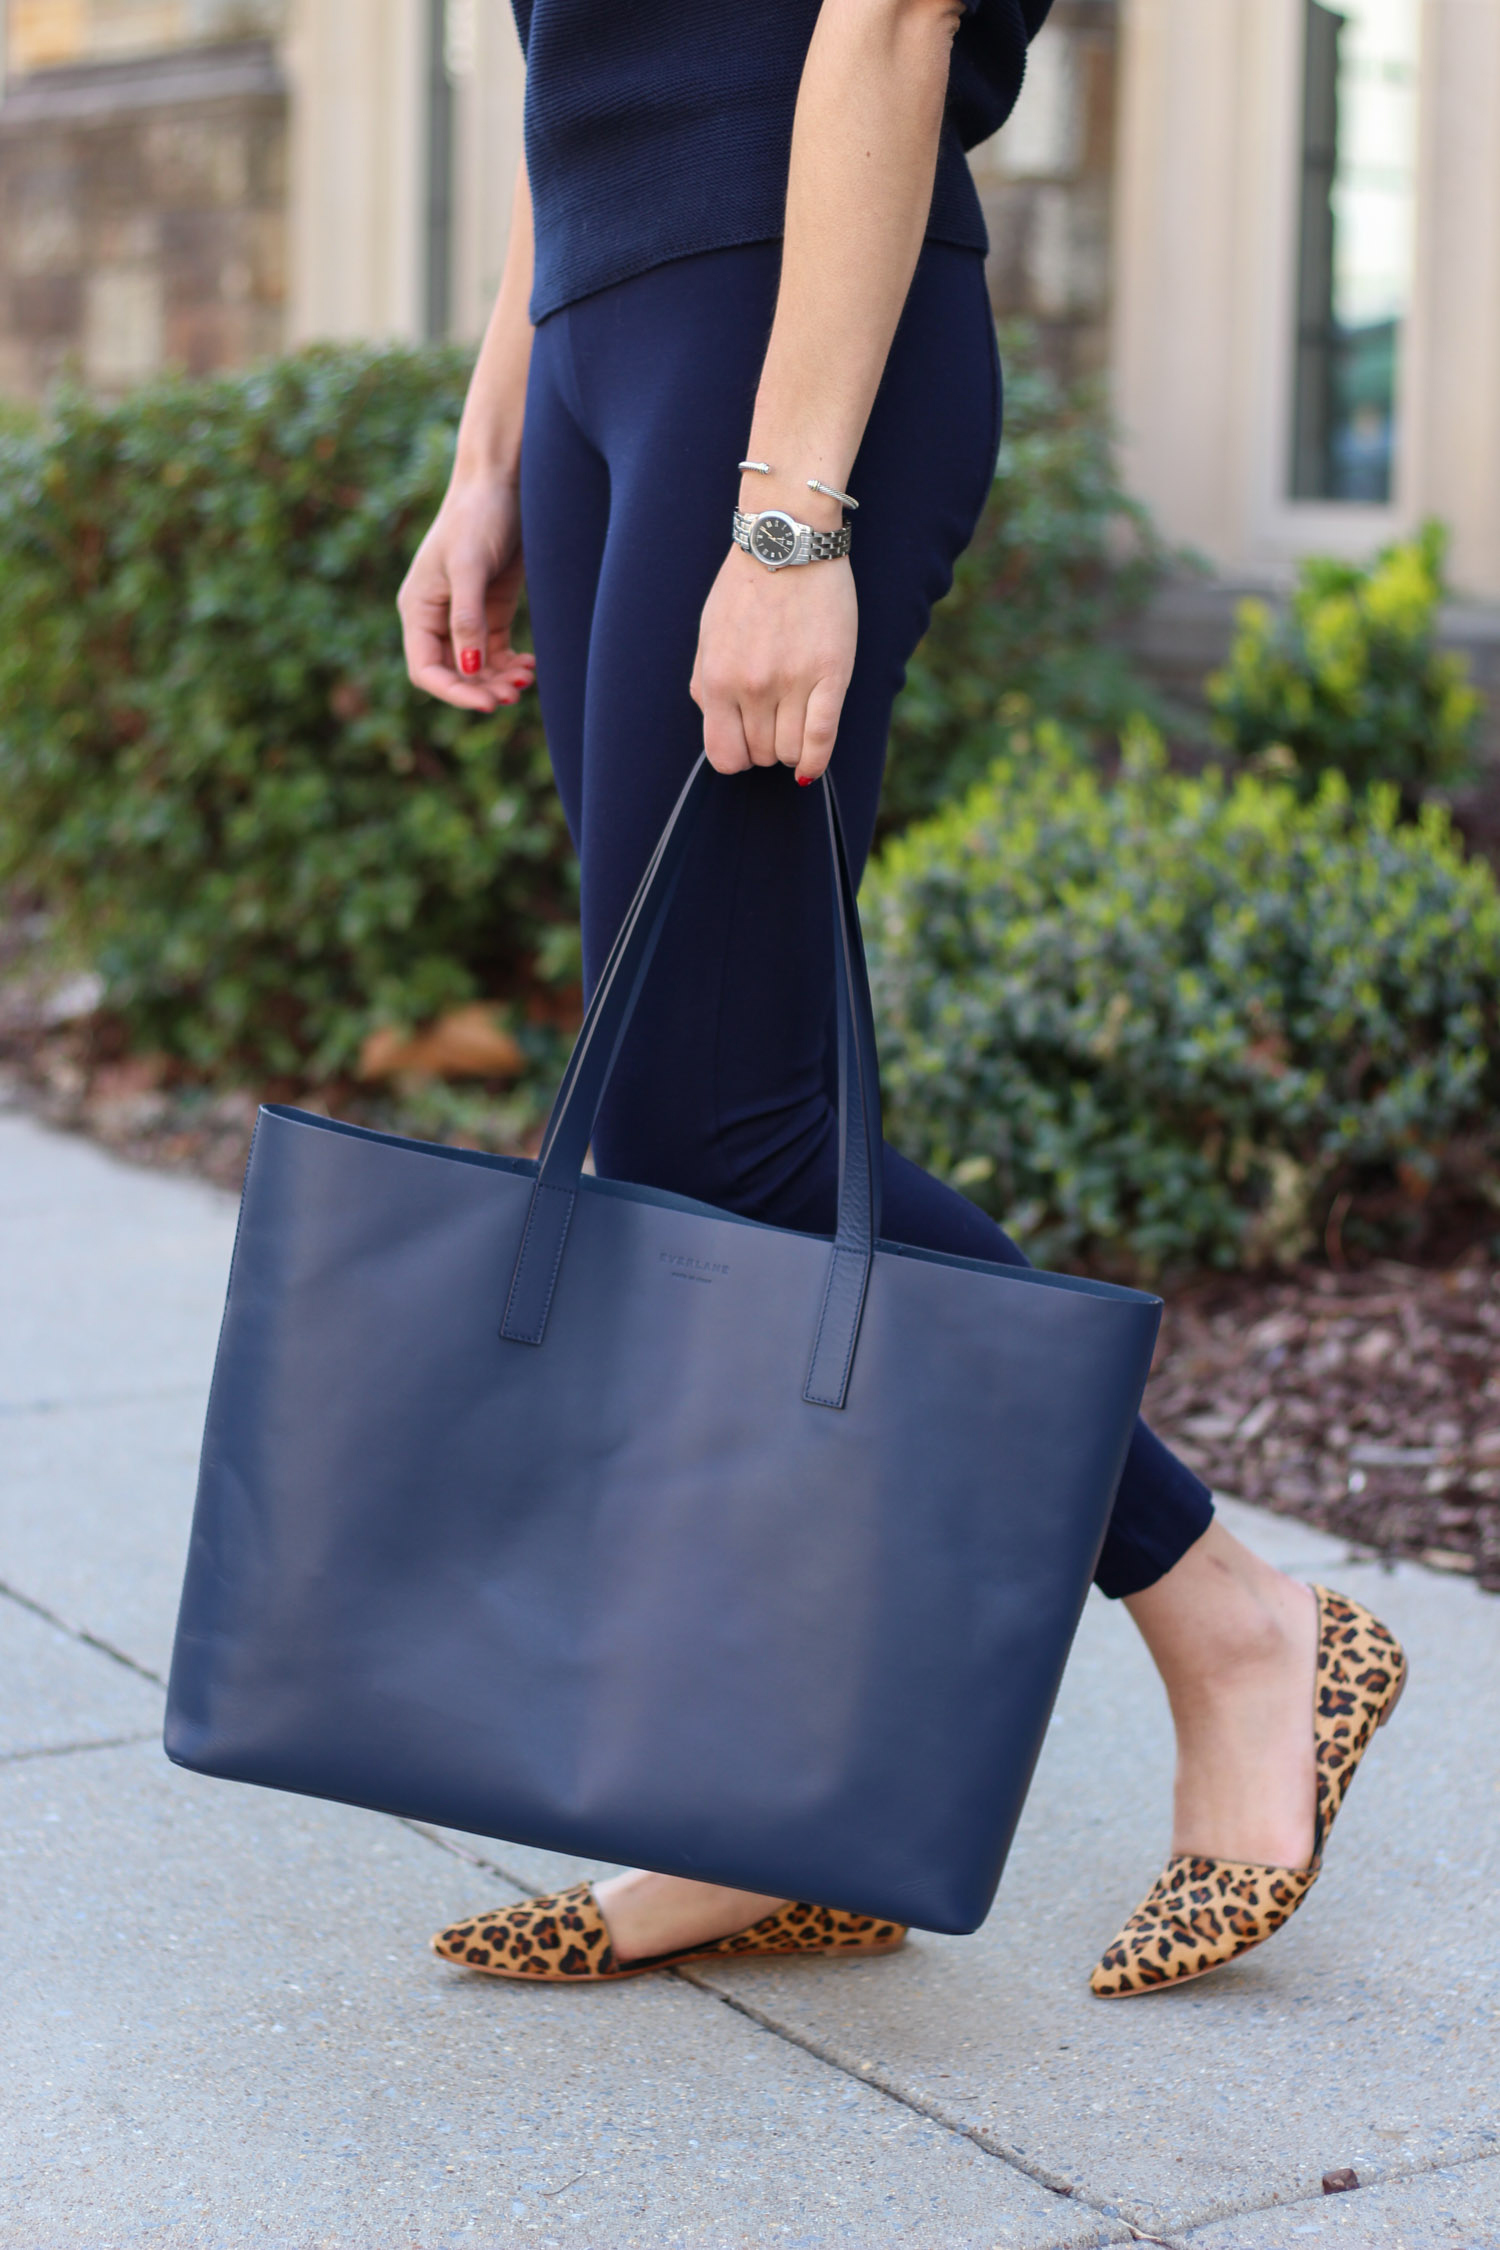 Everlane tote - All navy outfit featured by popular DC fashion blogger, Monica Dutia